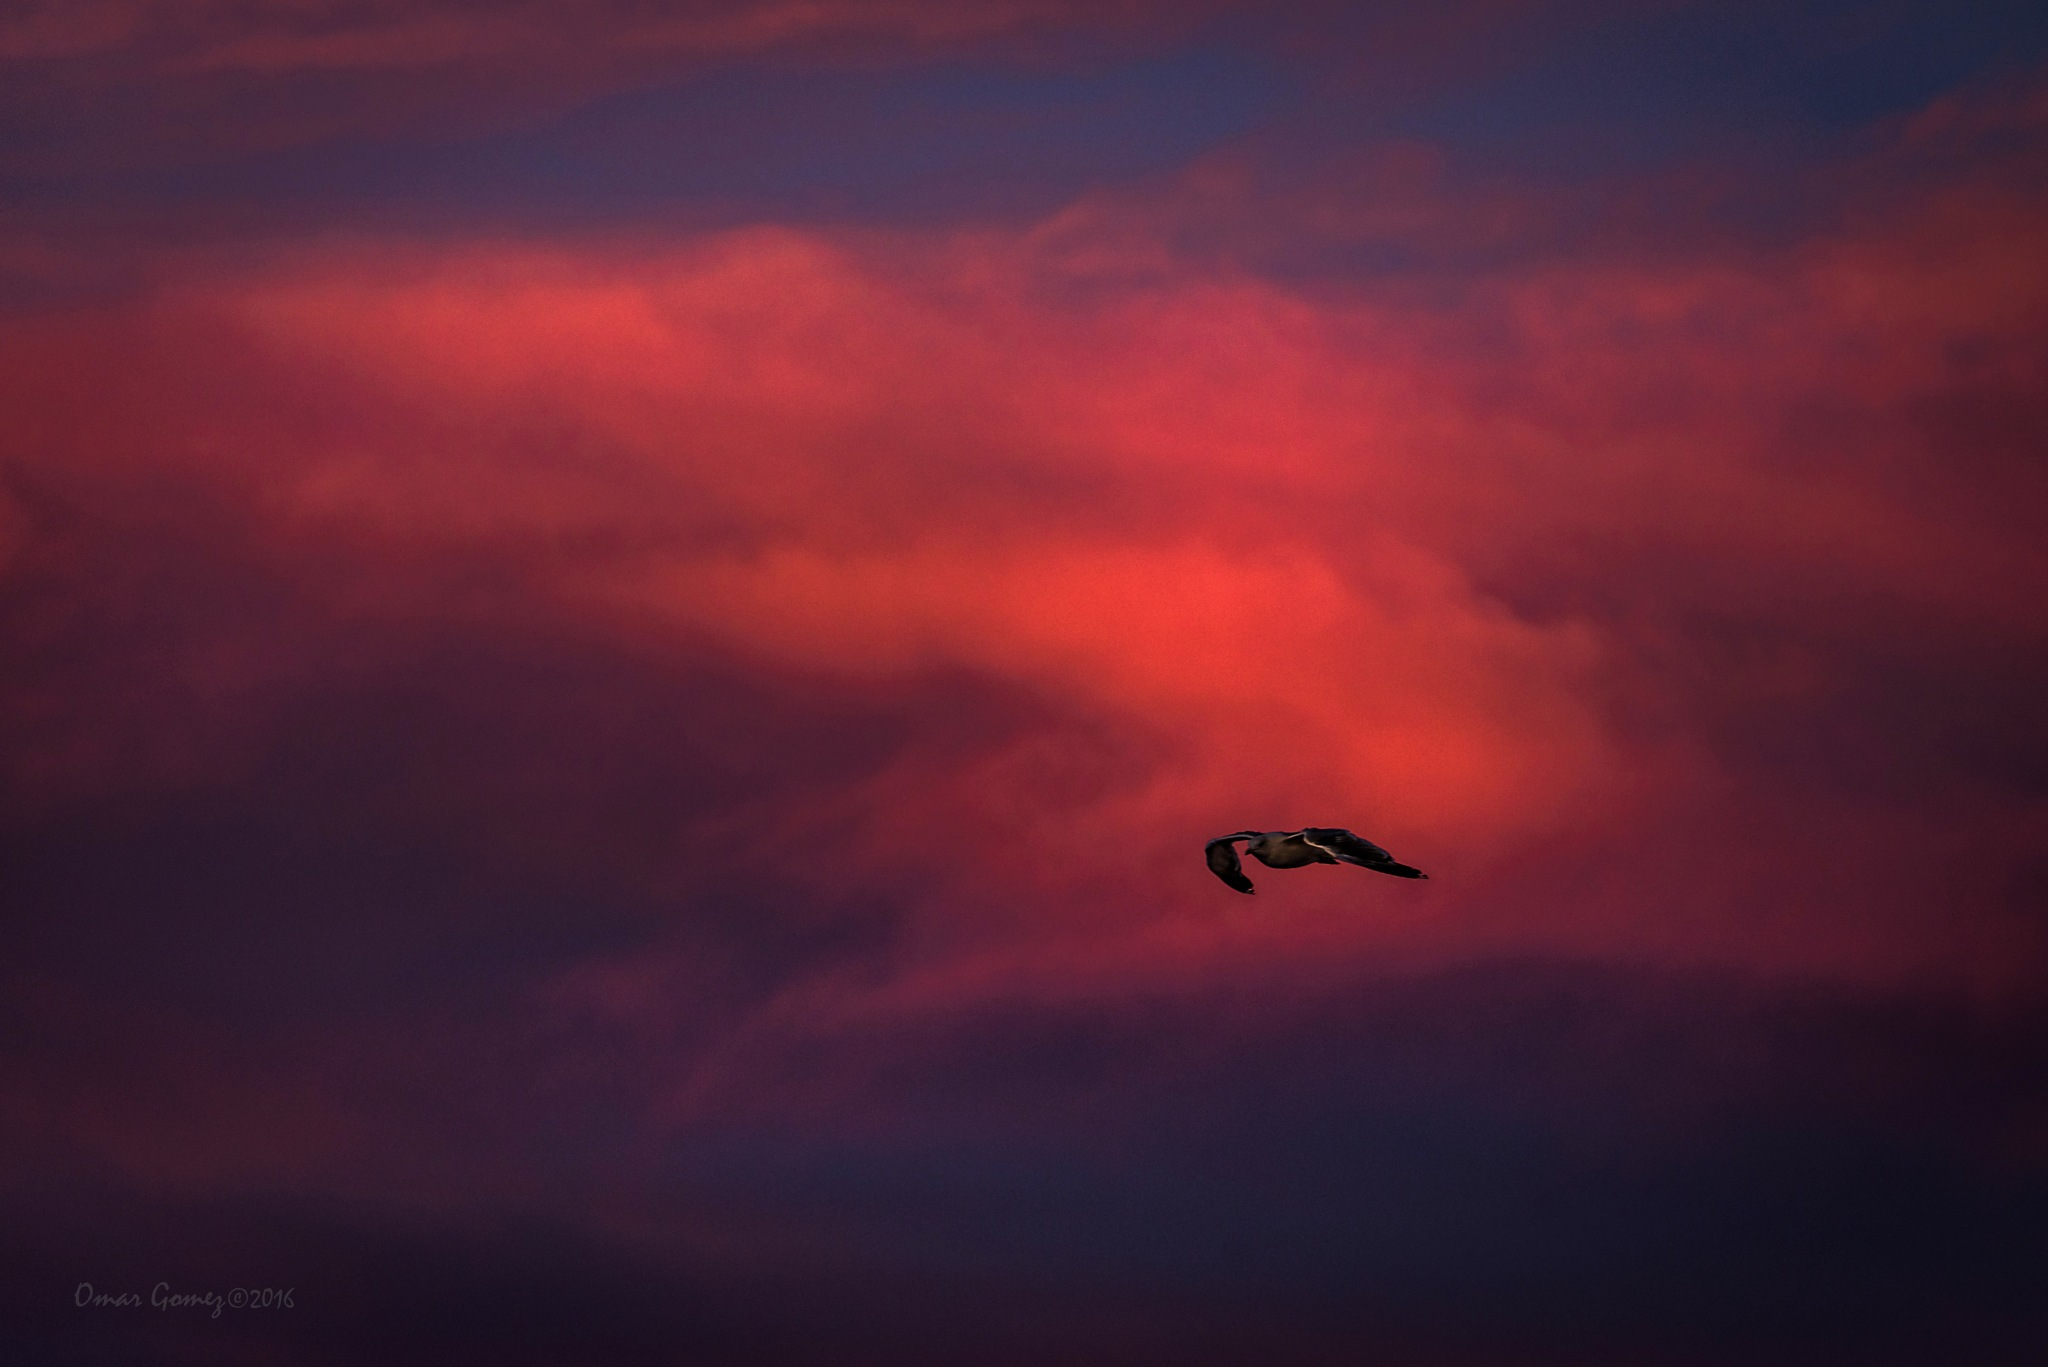 Flying On A Red Sky by Omar Gomez